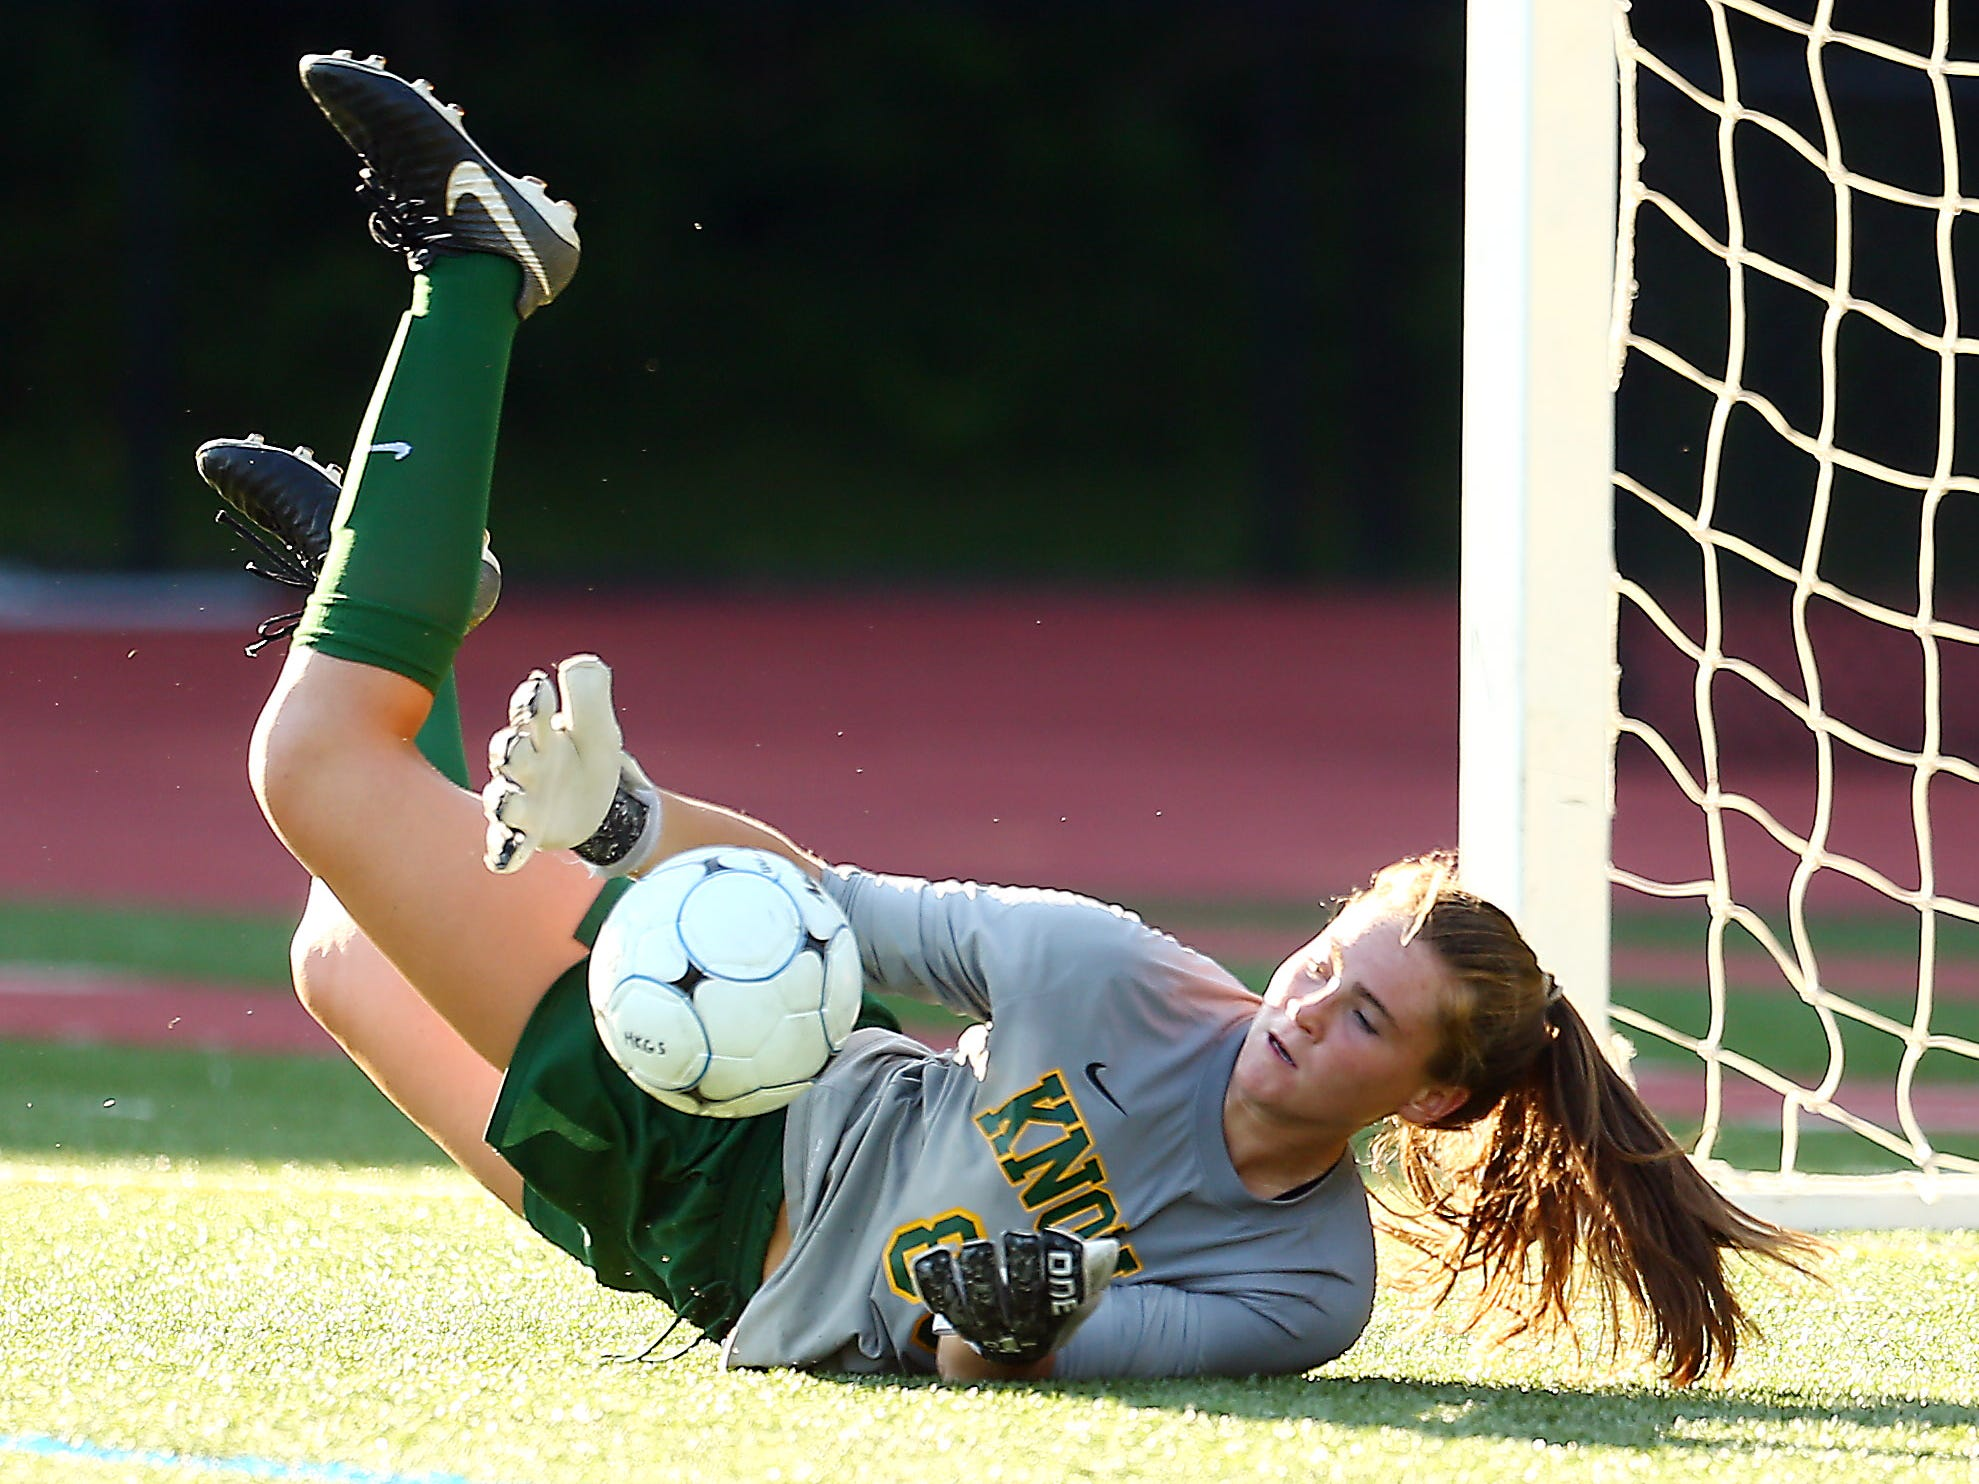 Morris Knolls goalkeeper Kate Walsh stops a shot on goal vs. Randolph in a NJAC-American girls soccer season opener. Morris Knolls coach Stephan Zdanowicz got her 200th career victory in the 2-0 win at home. September 5, 2018, Denville, NJ